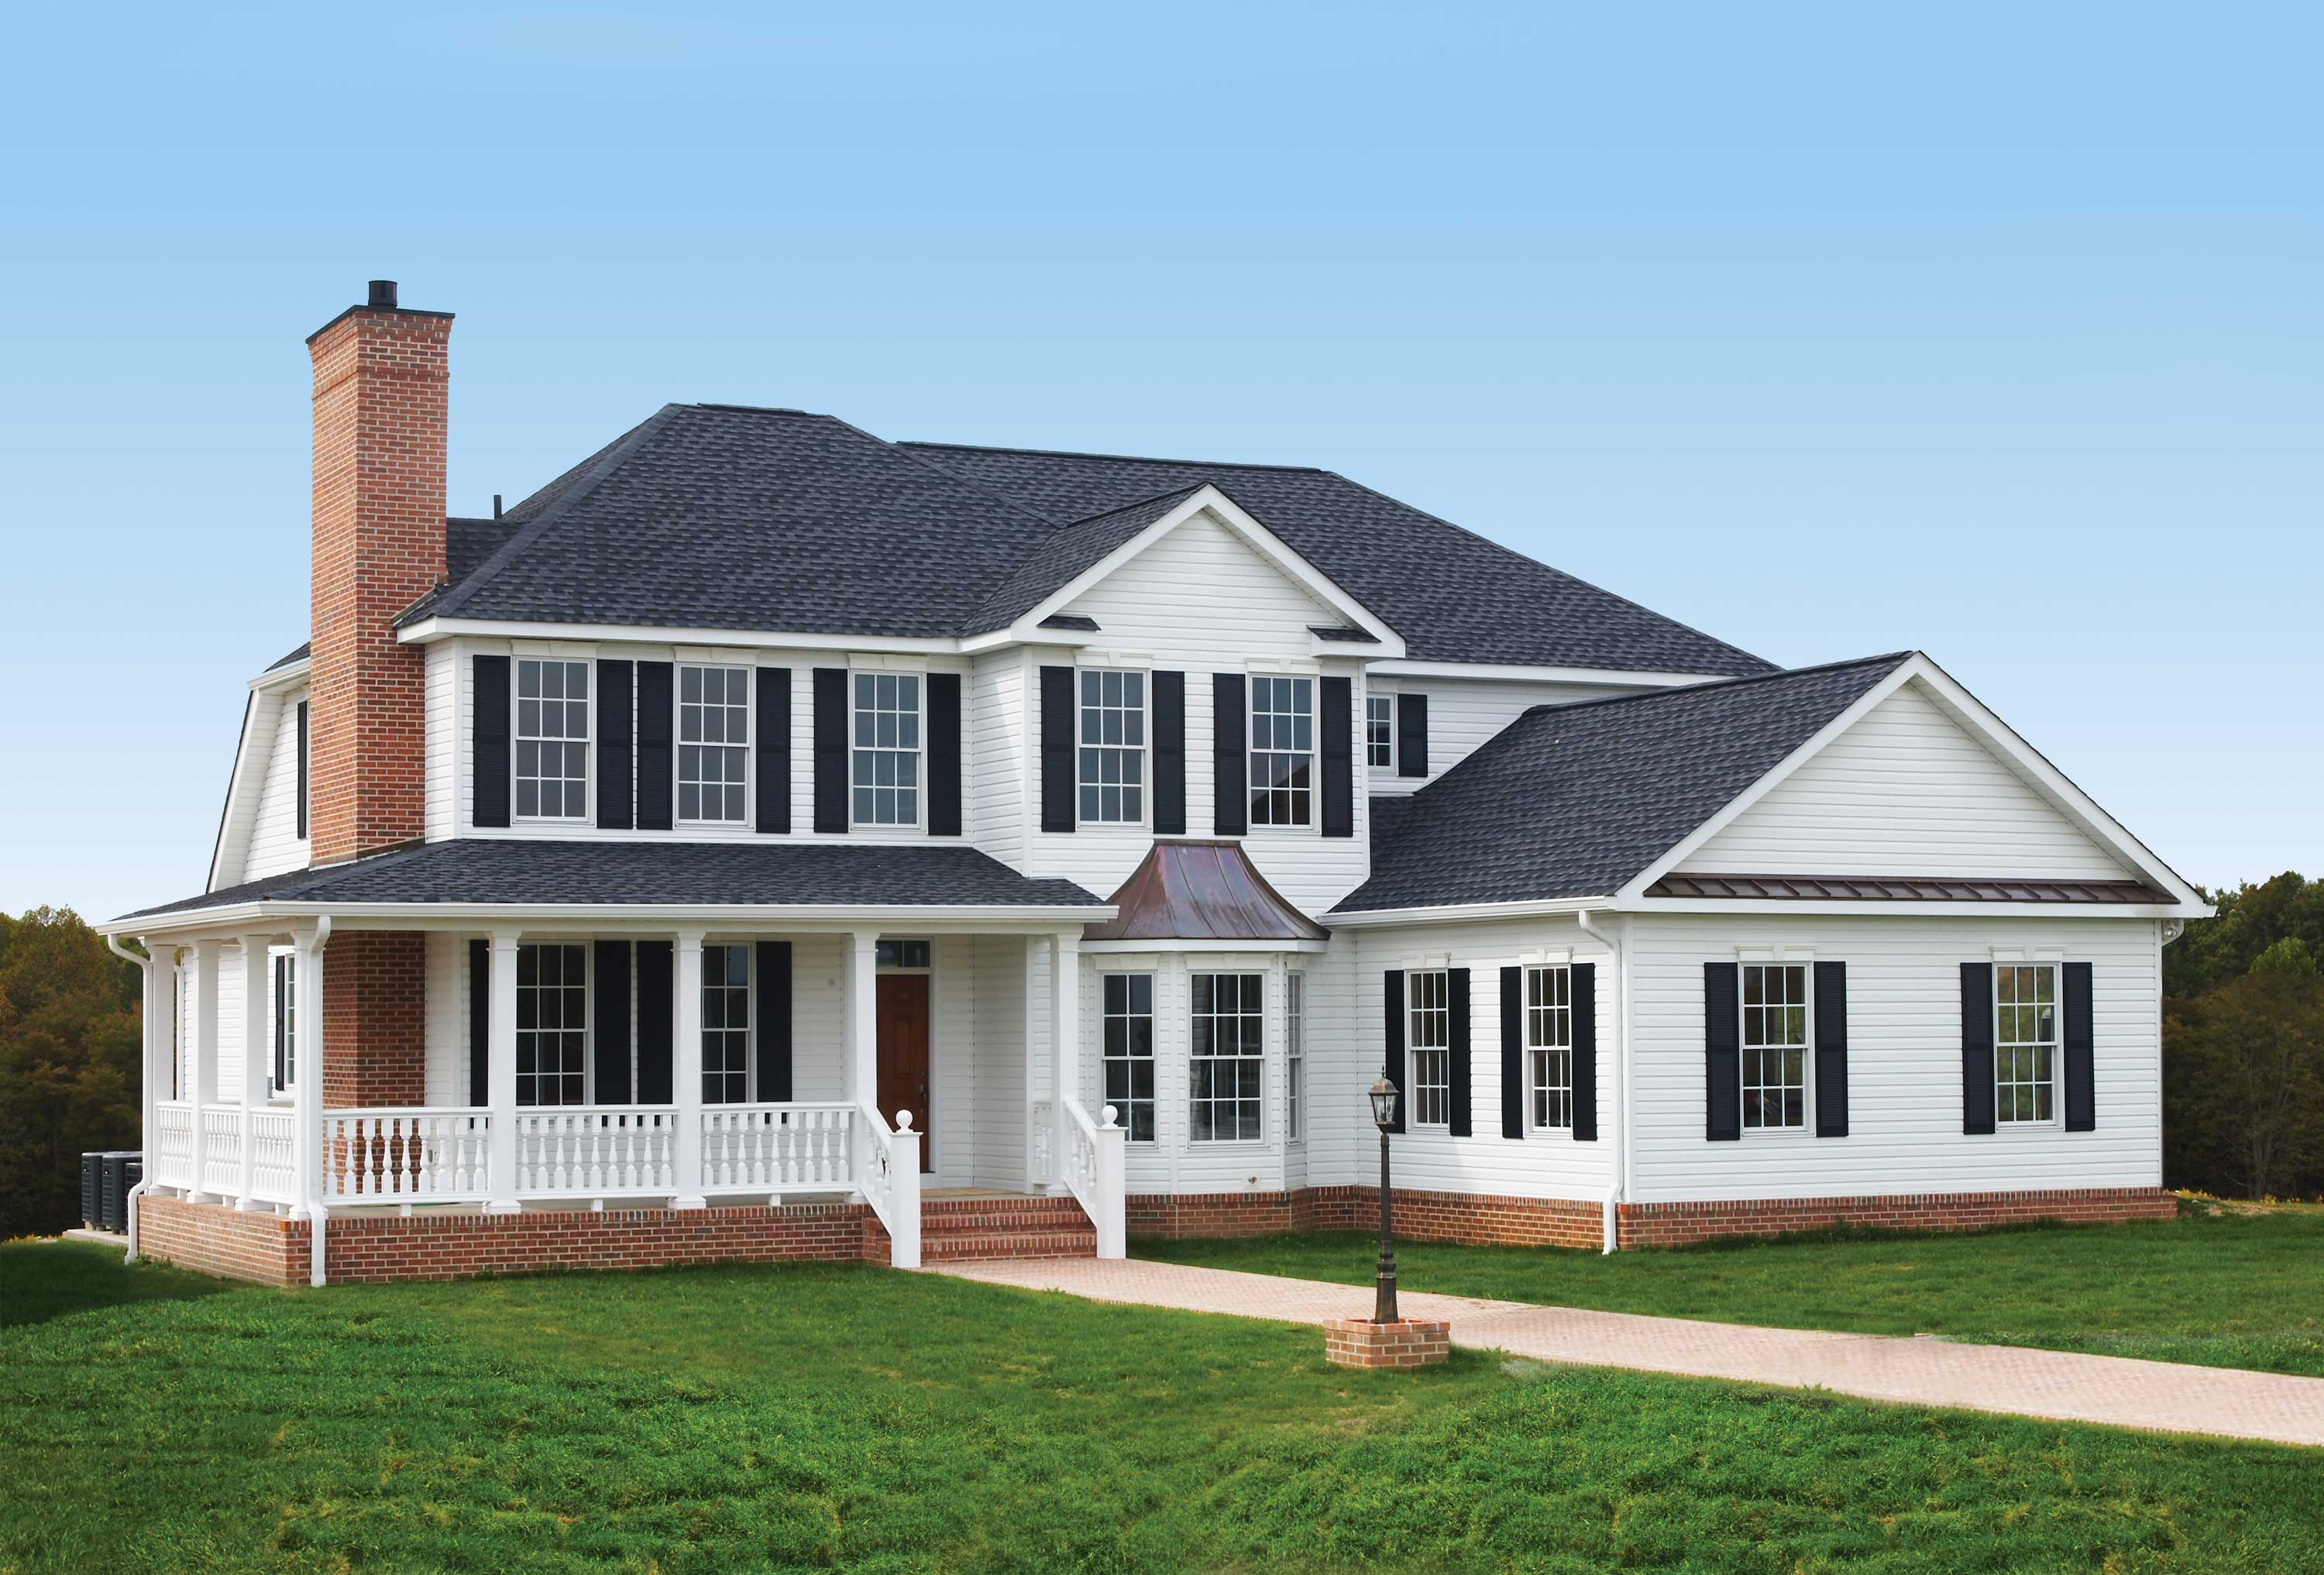 Exterior Siding Ideas | Mid-America on House Siding Ideas  id=86283